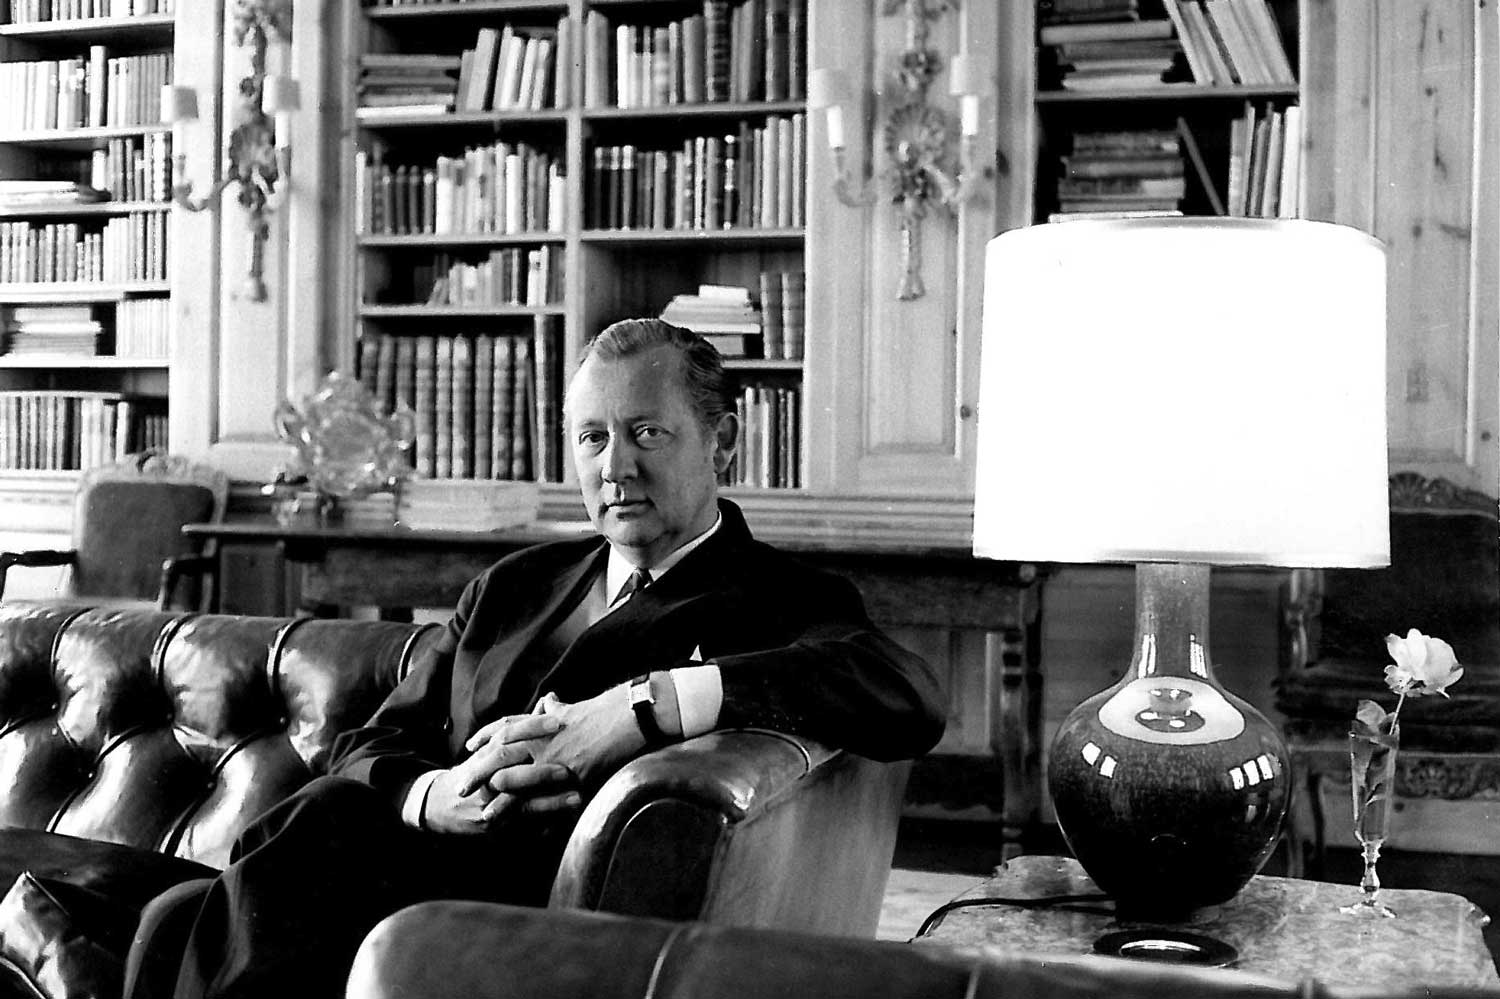 1966 - Axel Springer in the Small Library, today's Journalist Club of the Berlin publishing house (Image: axelspringer.com)